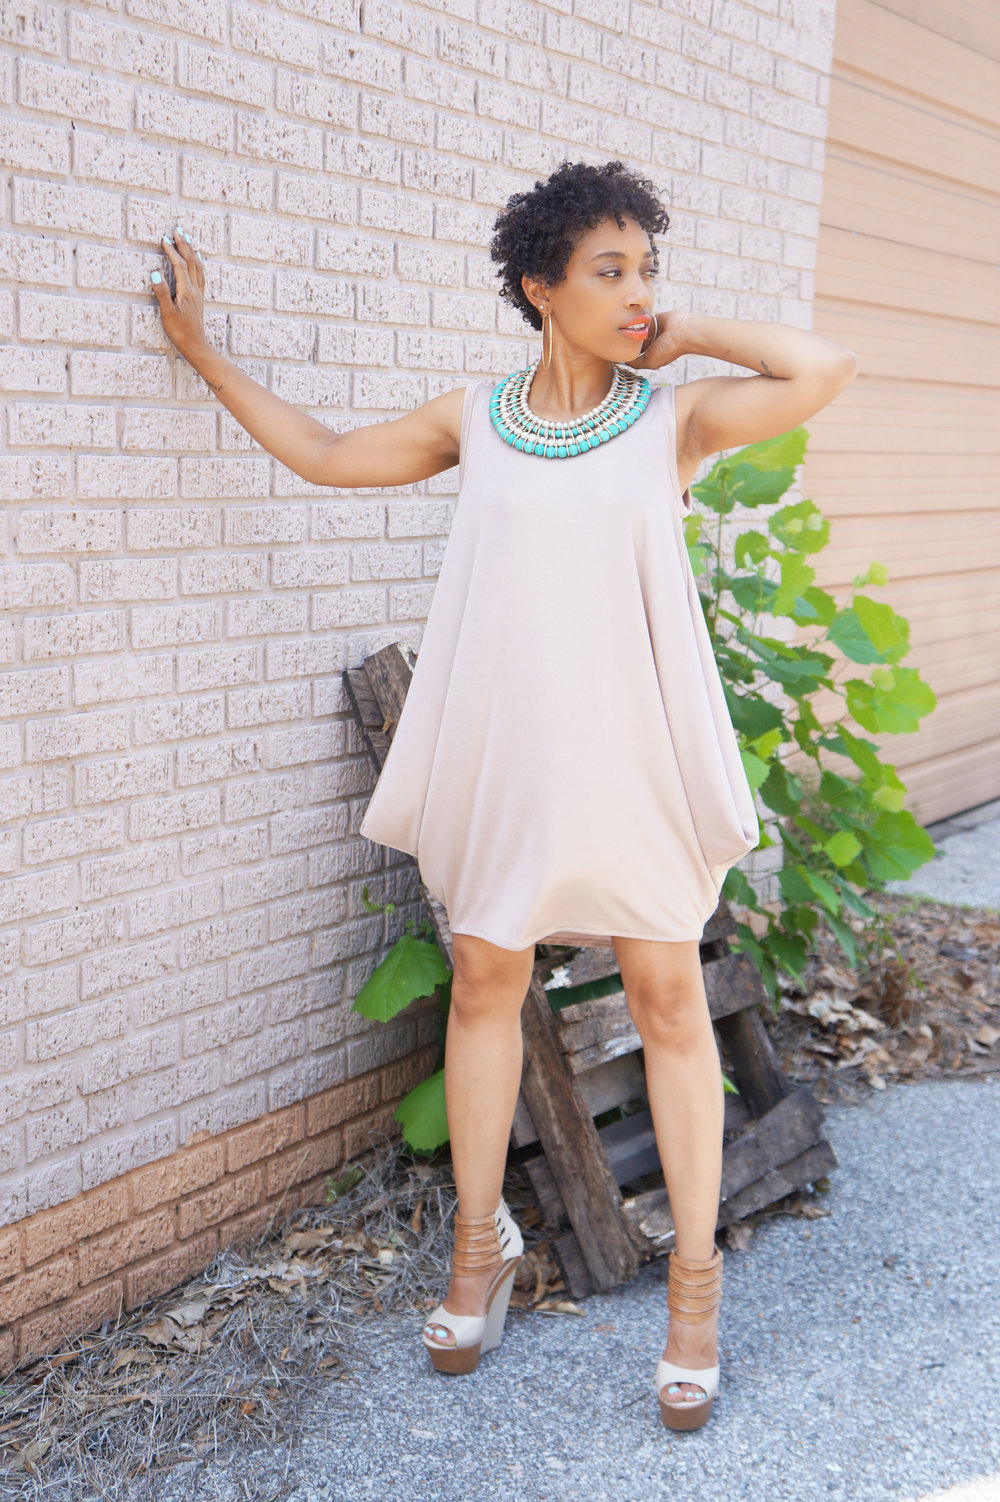 Brunch and Sew Memphis Sewing Blogger shares a draped dress inspiration